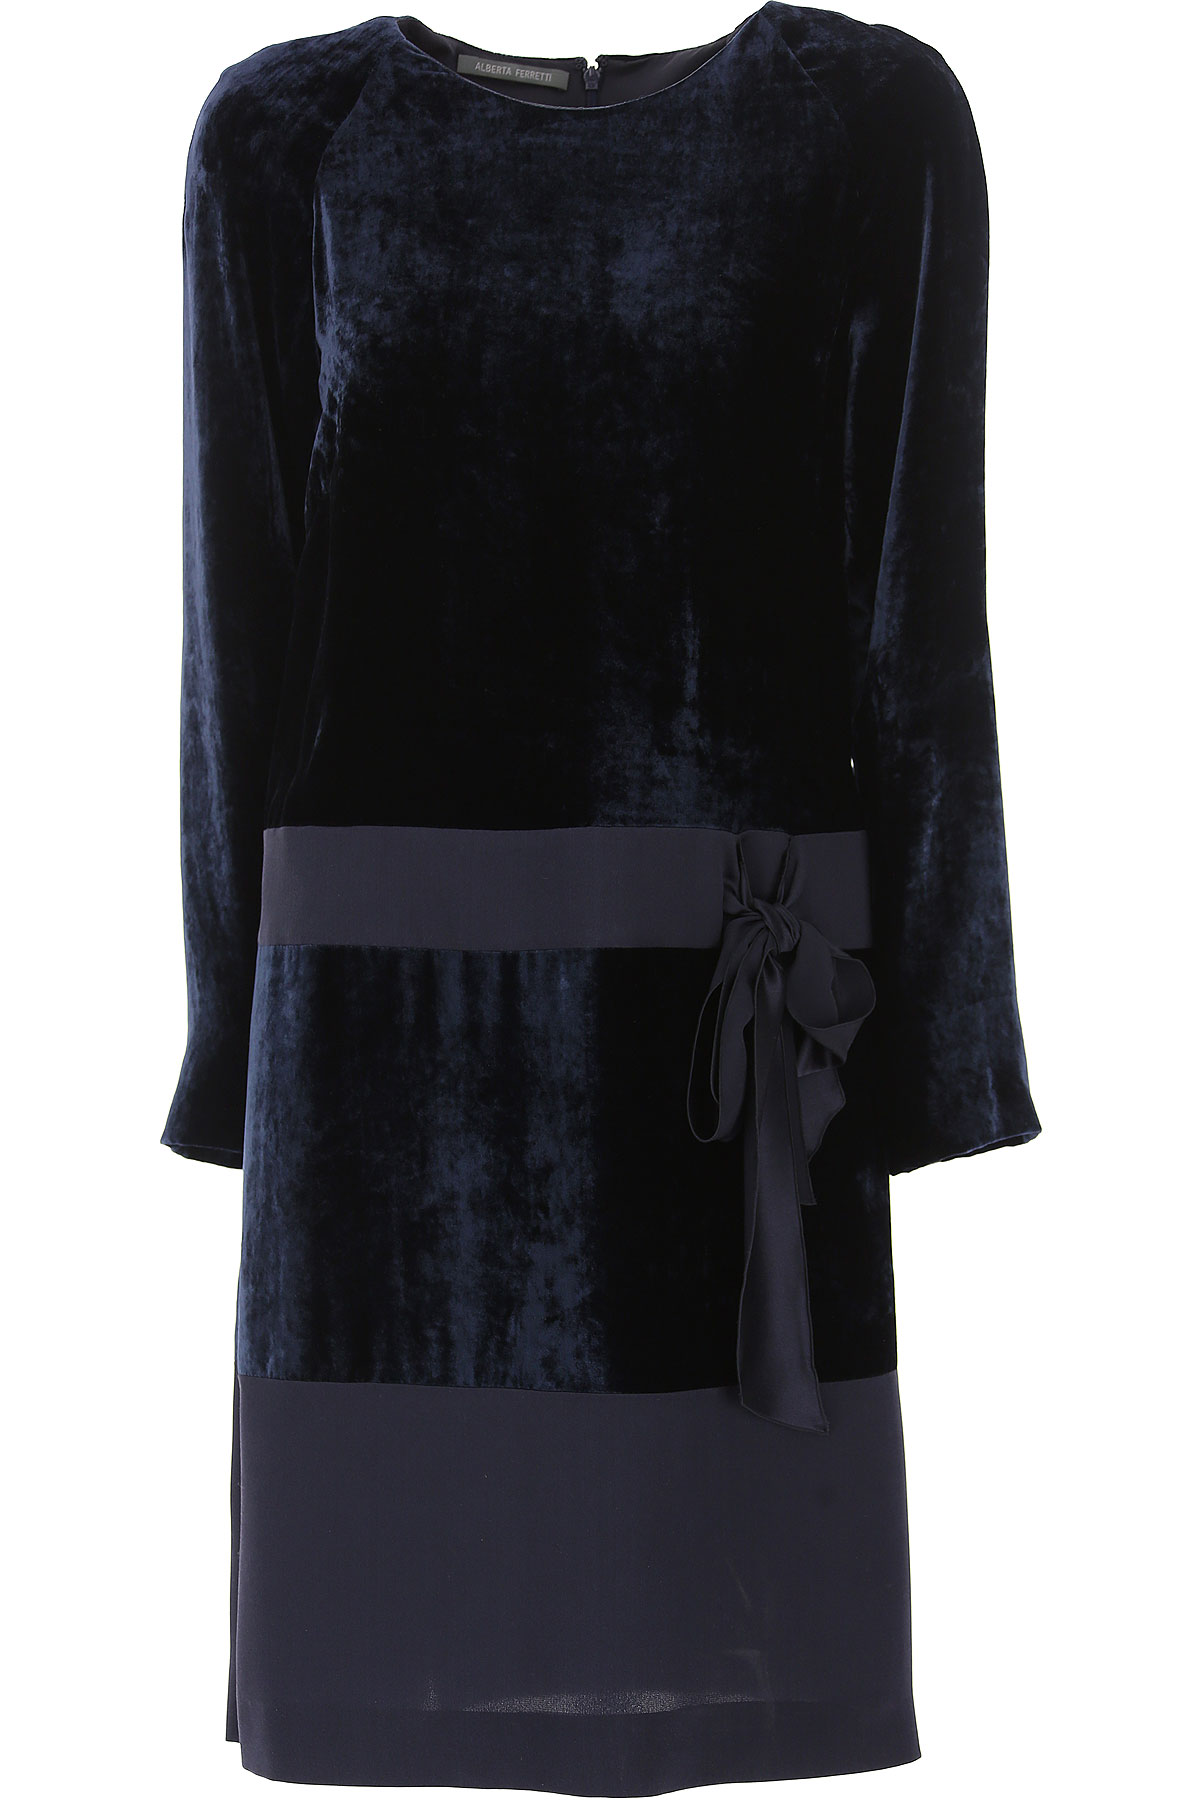 Image of Alberta Ferretti Dress for Women, Evening Cocktail Party On Sale, Blue, viscosa, 2017, 4 8